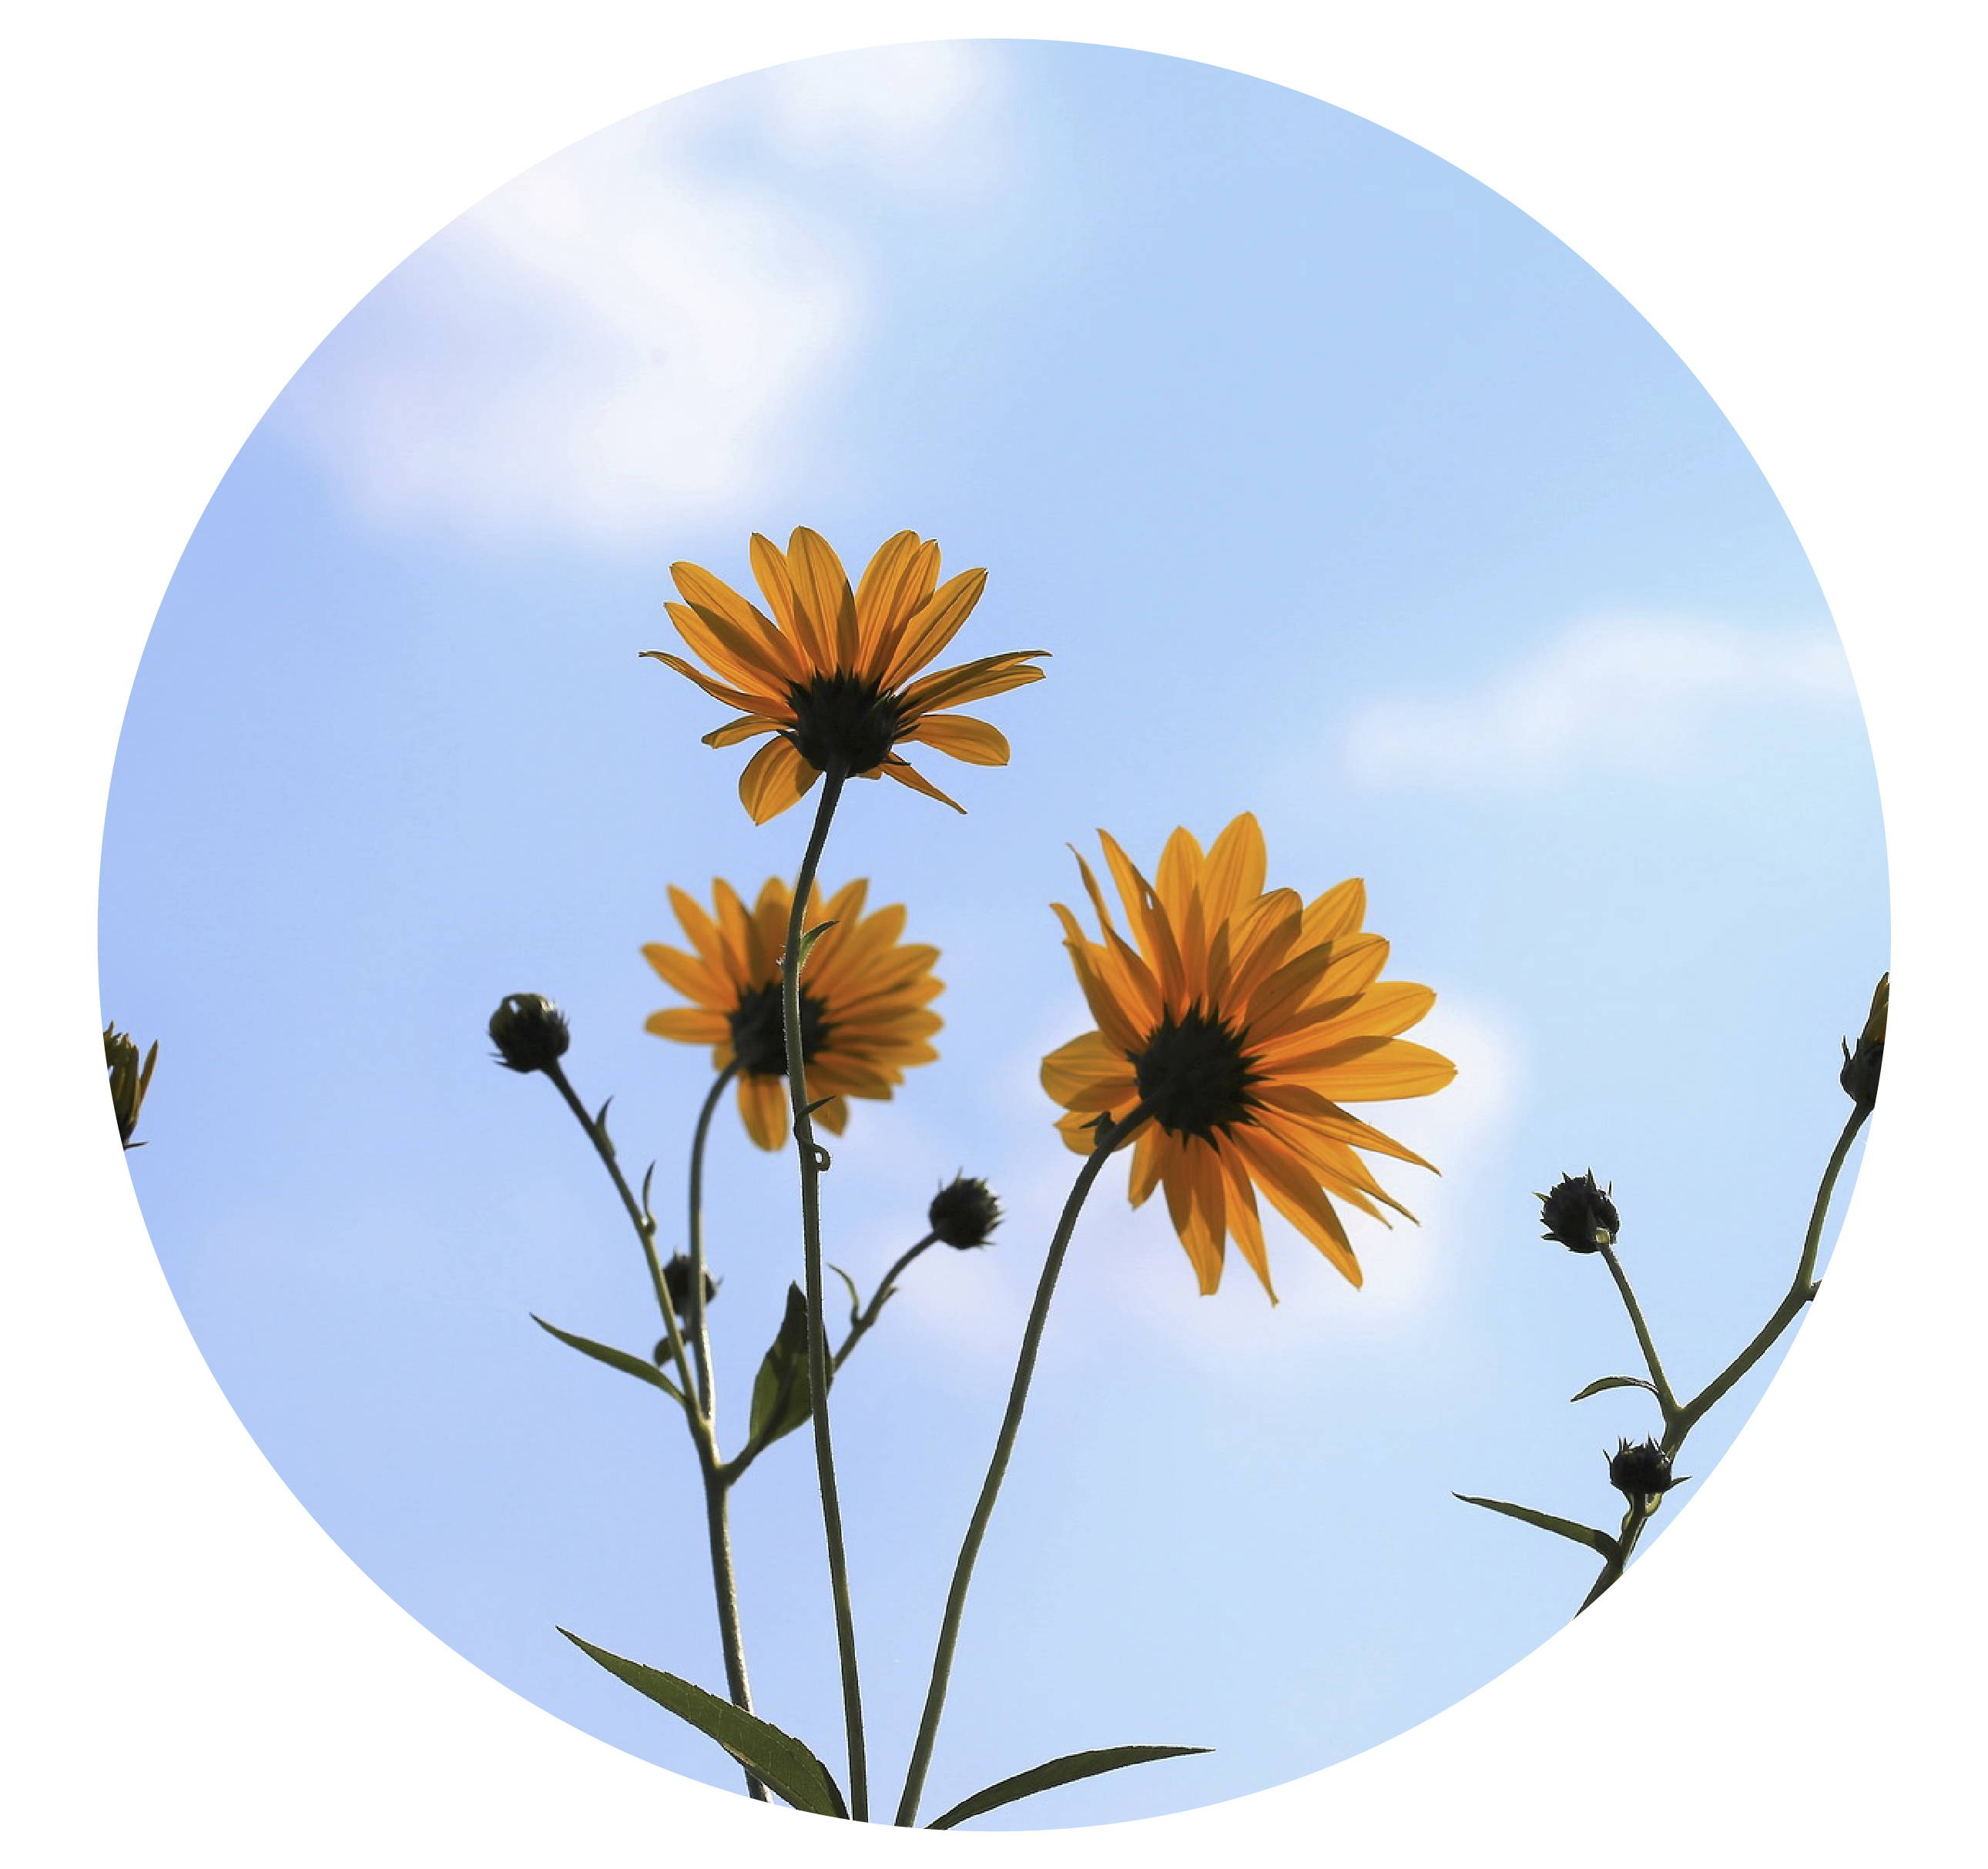 Arnica is known to be an excellent wound healer, and it's great for your scalp too! It stimulates the metabolism and circulation of the scalp, which helps to promote hair growth.